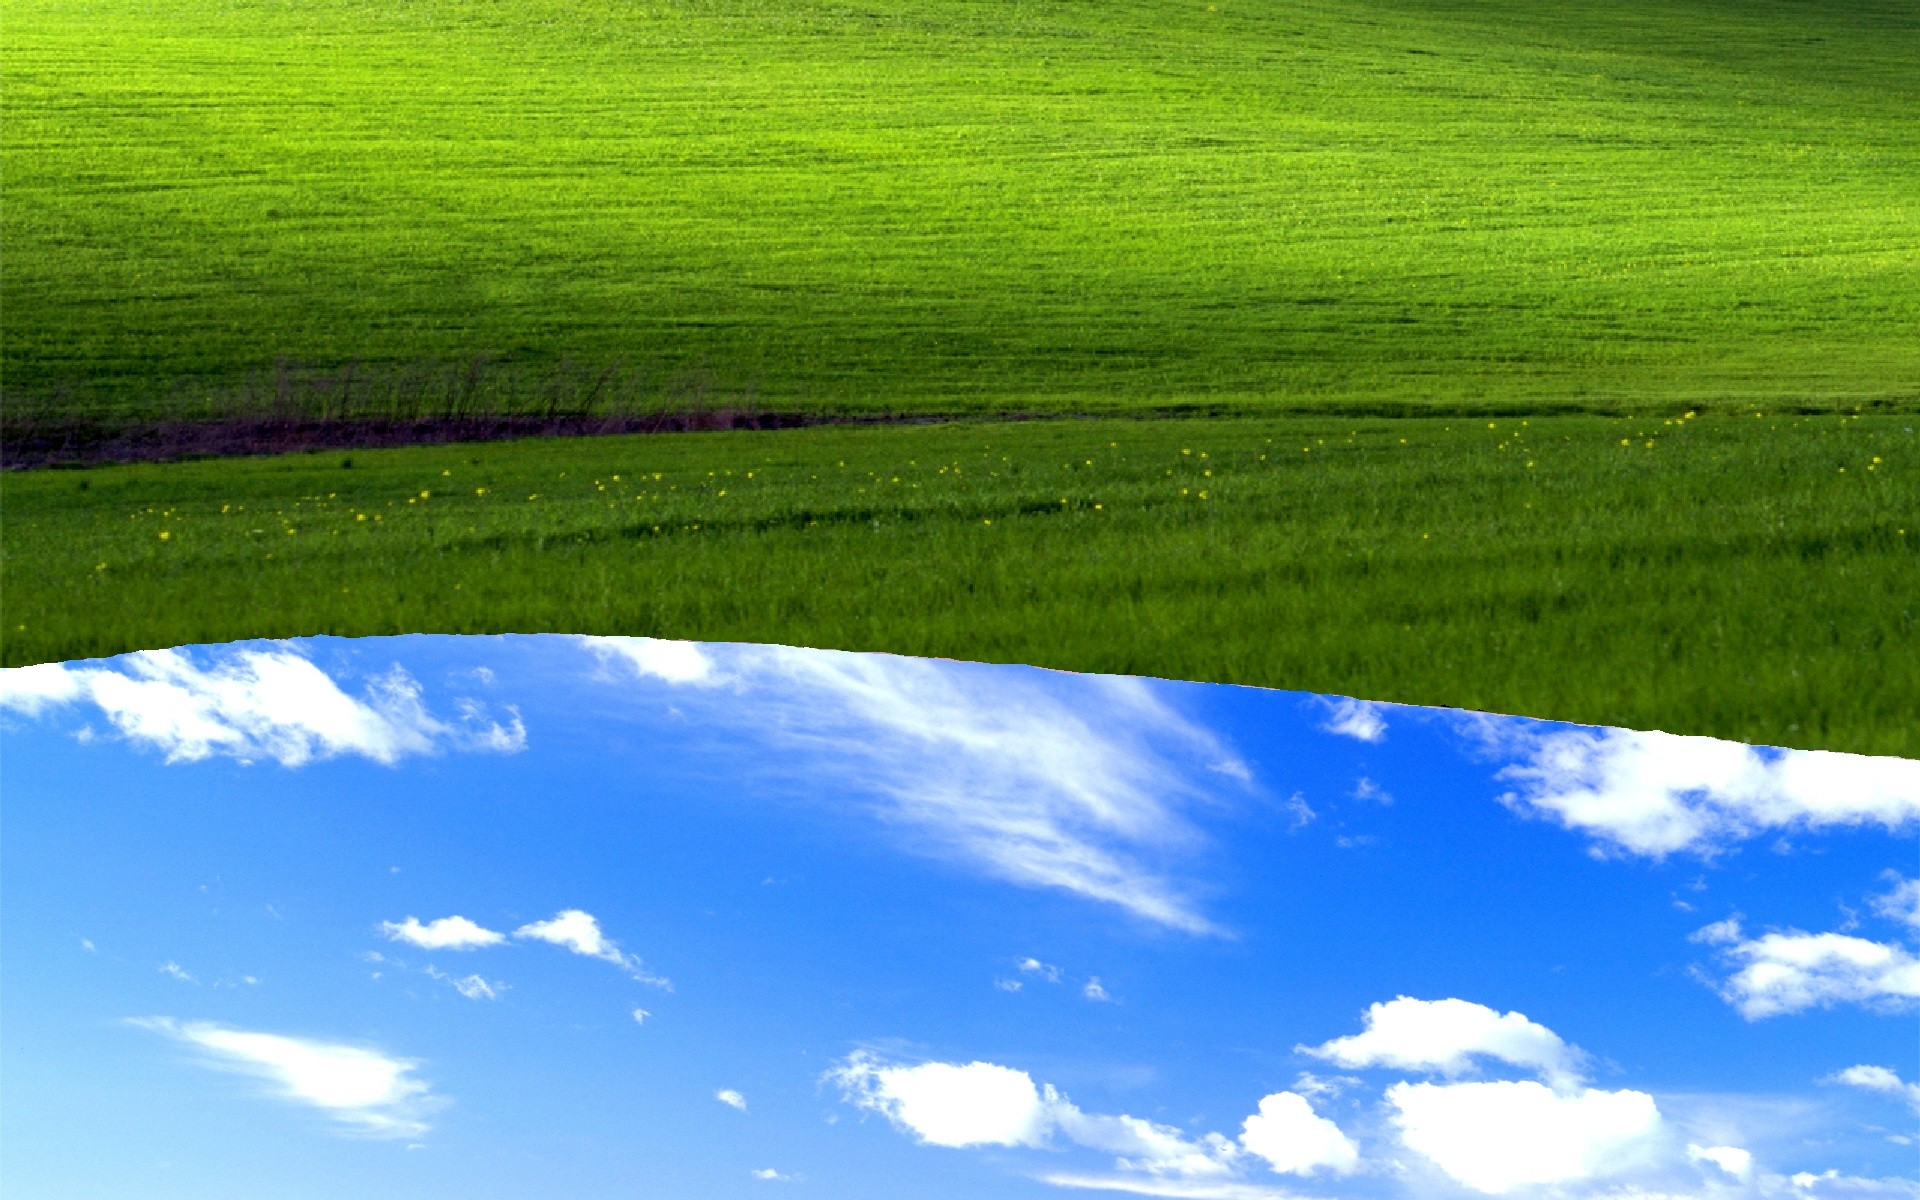 1920x1200 Bliss grassland green sky nature field grass meadow ecosystem daytime  atmosphere atmosphere of earth water resources